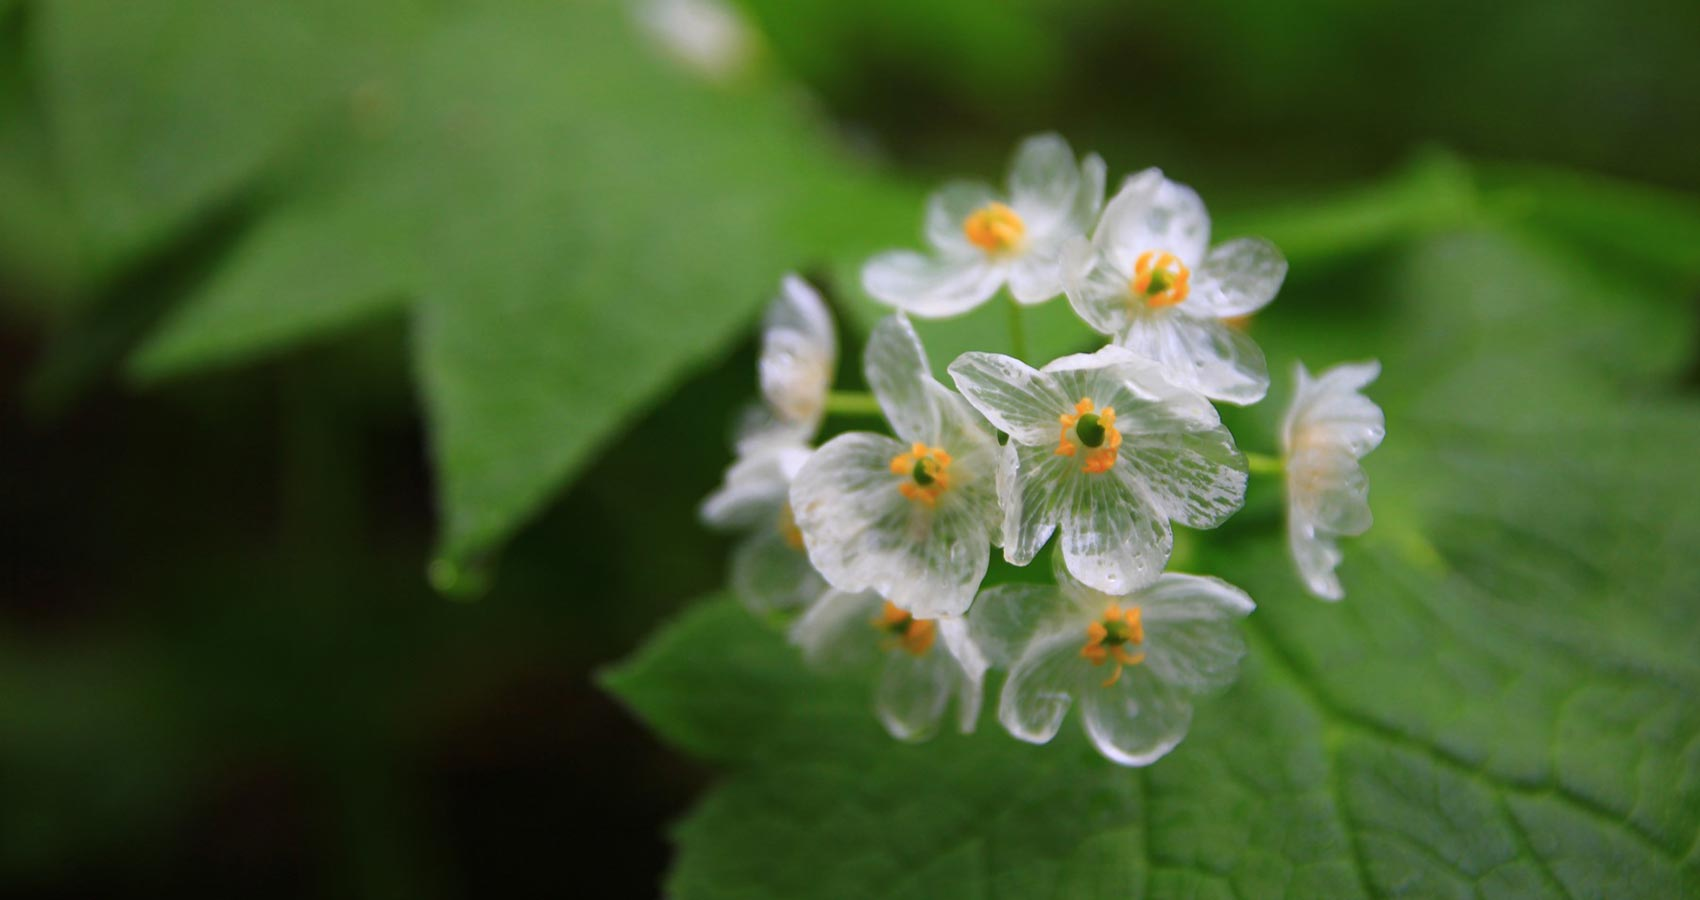 A Song For Diphylleia Grayi, a poem by Tsingtoh at Spillwords.com